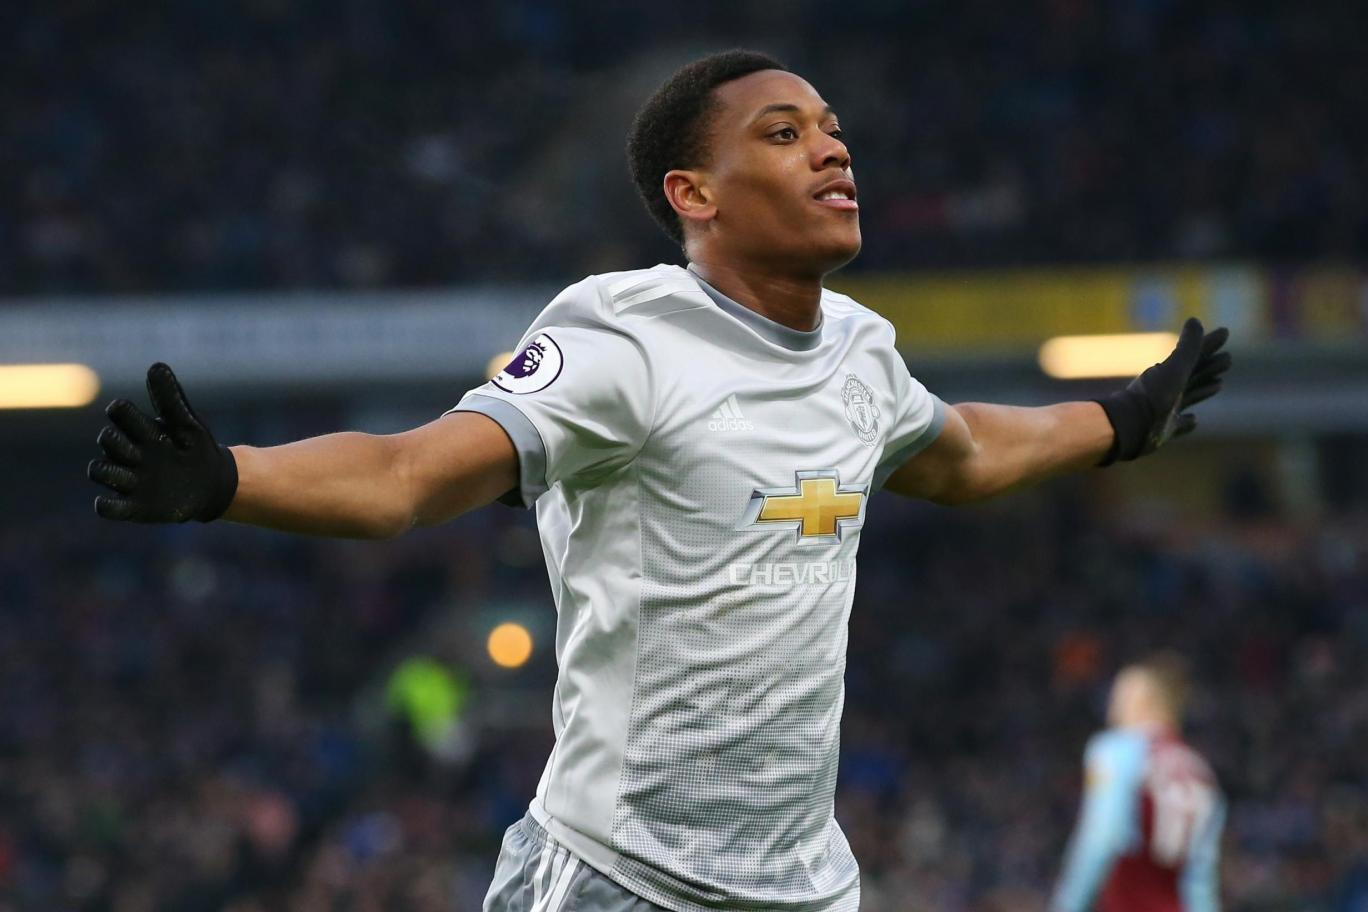 Anthony Martial has been tipped to elave United according to Shaka Hislop